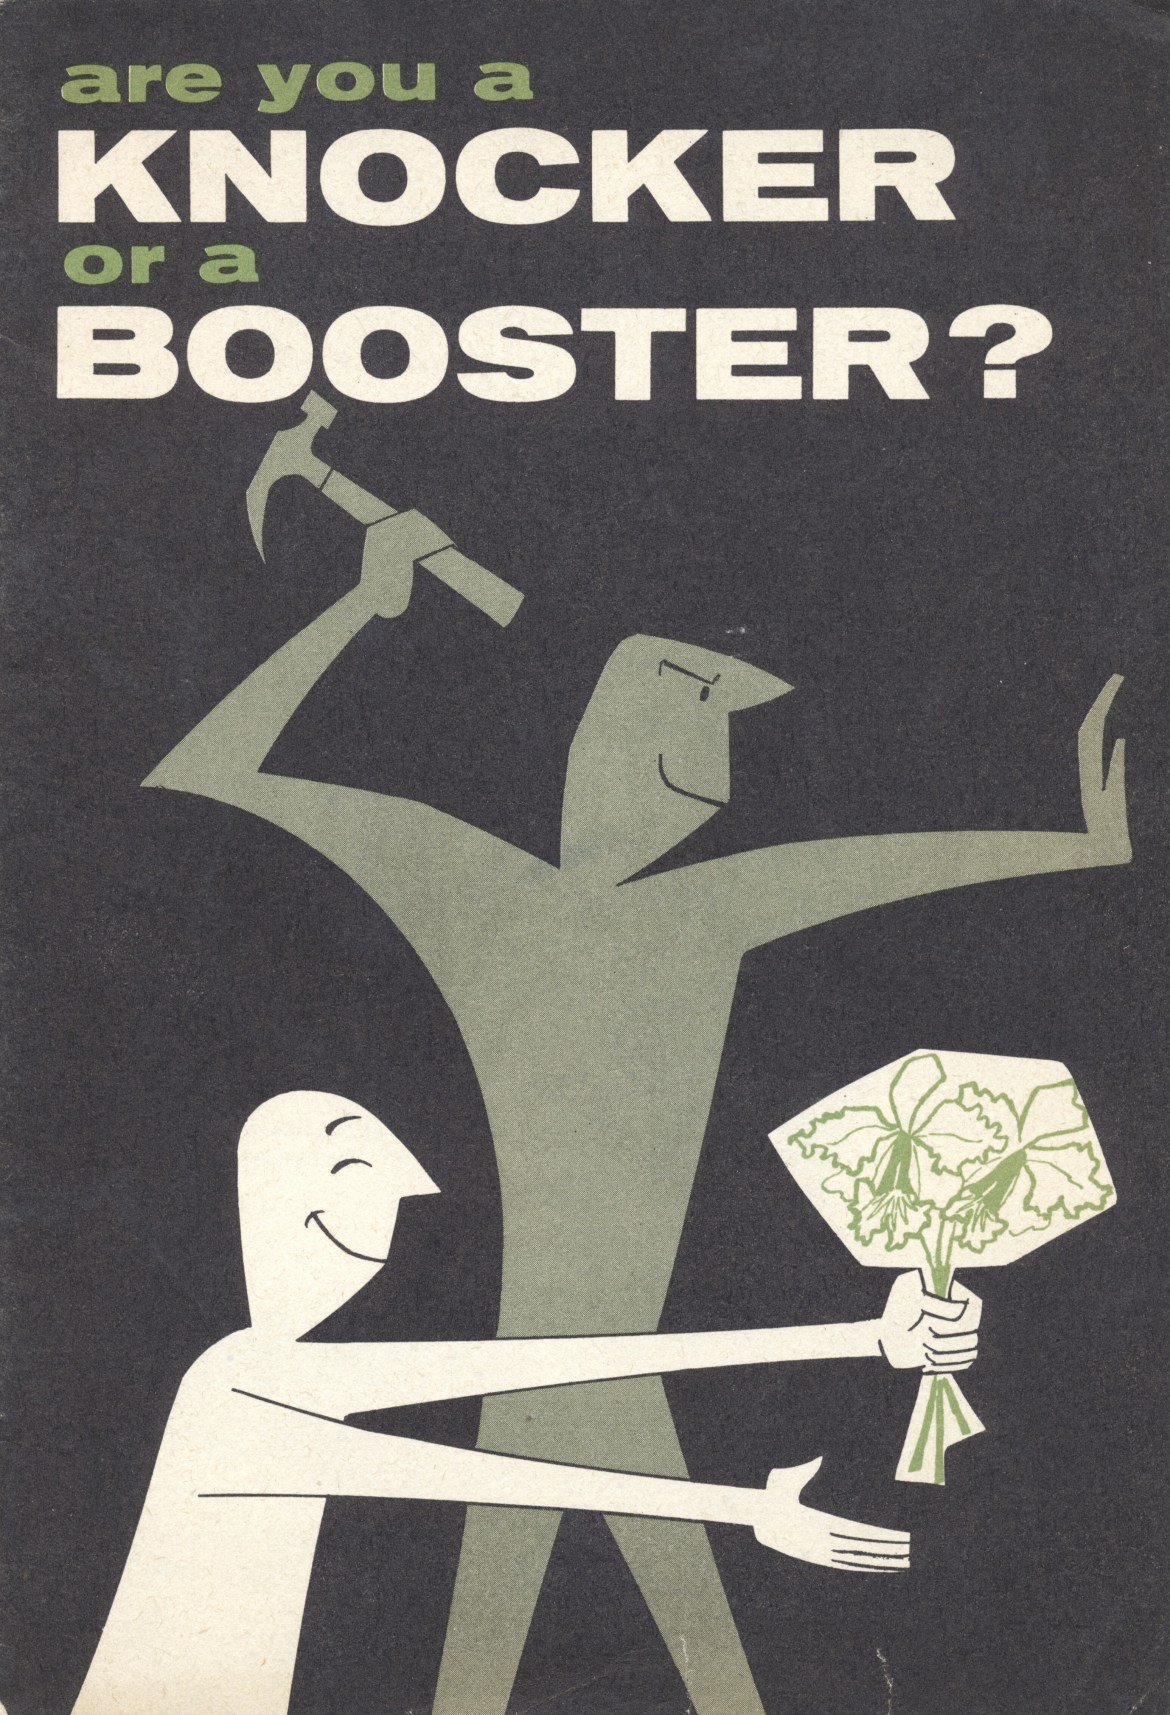 Are You A Knocker or a Booster?